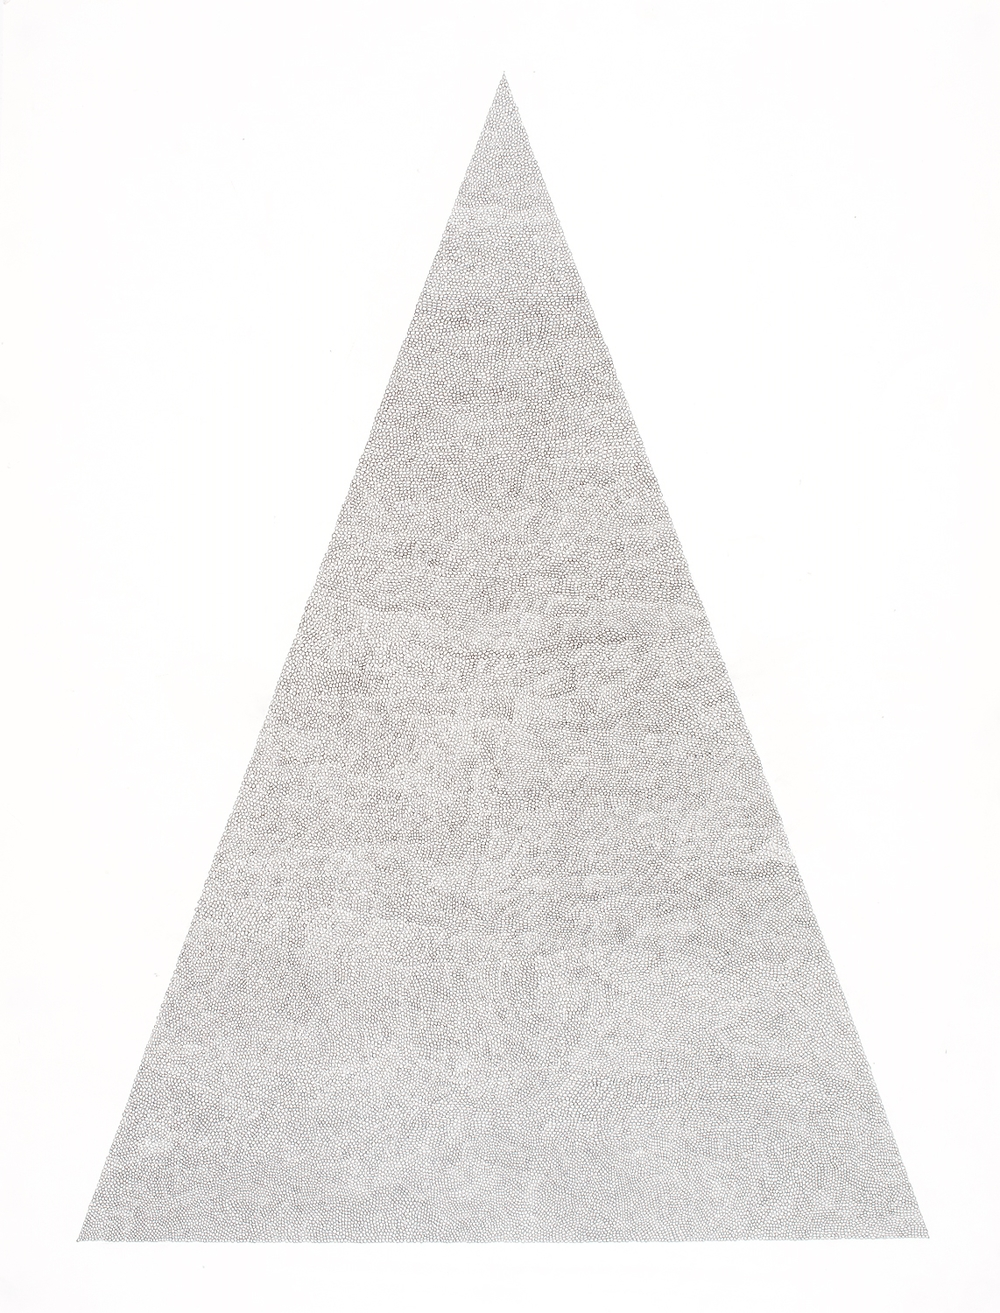 Circle Within Large Triangle, 2007 50 by 38 inches Graphite on paper